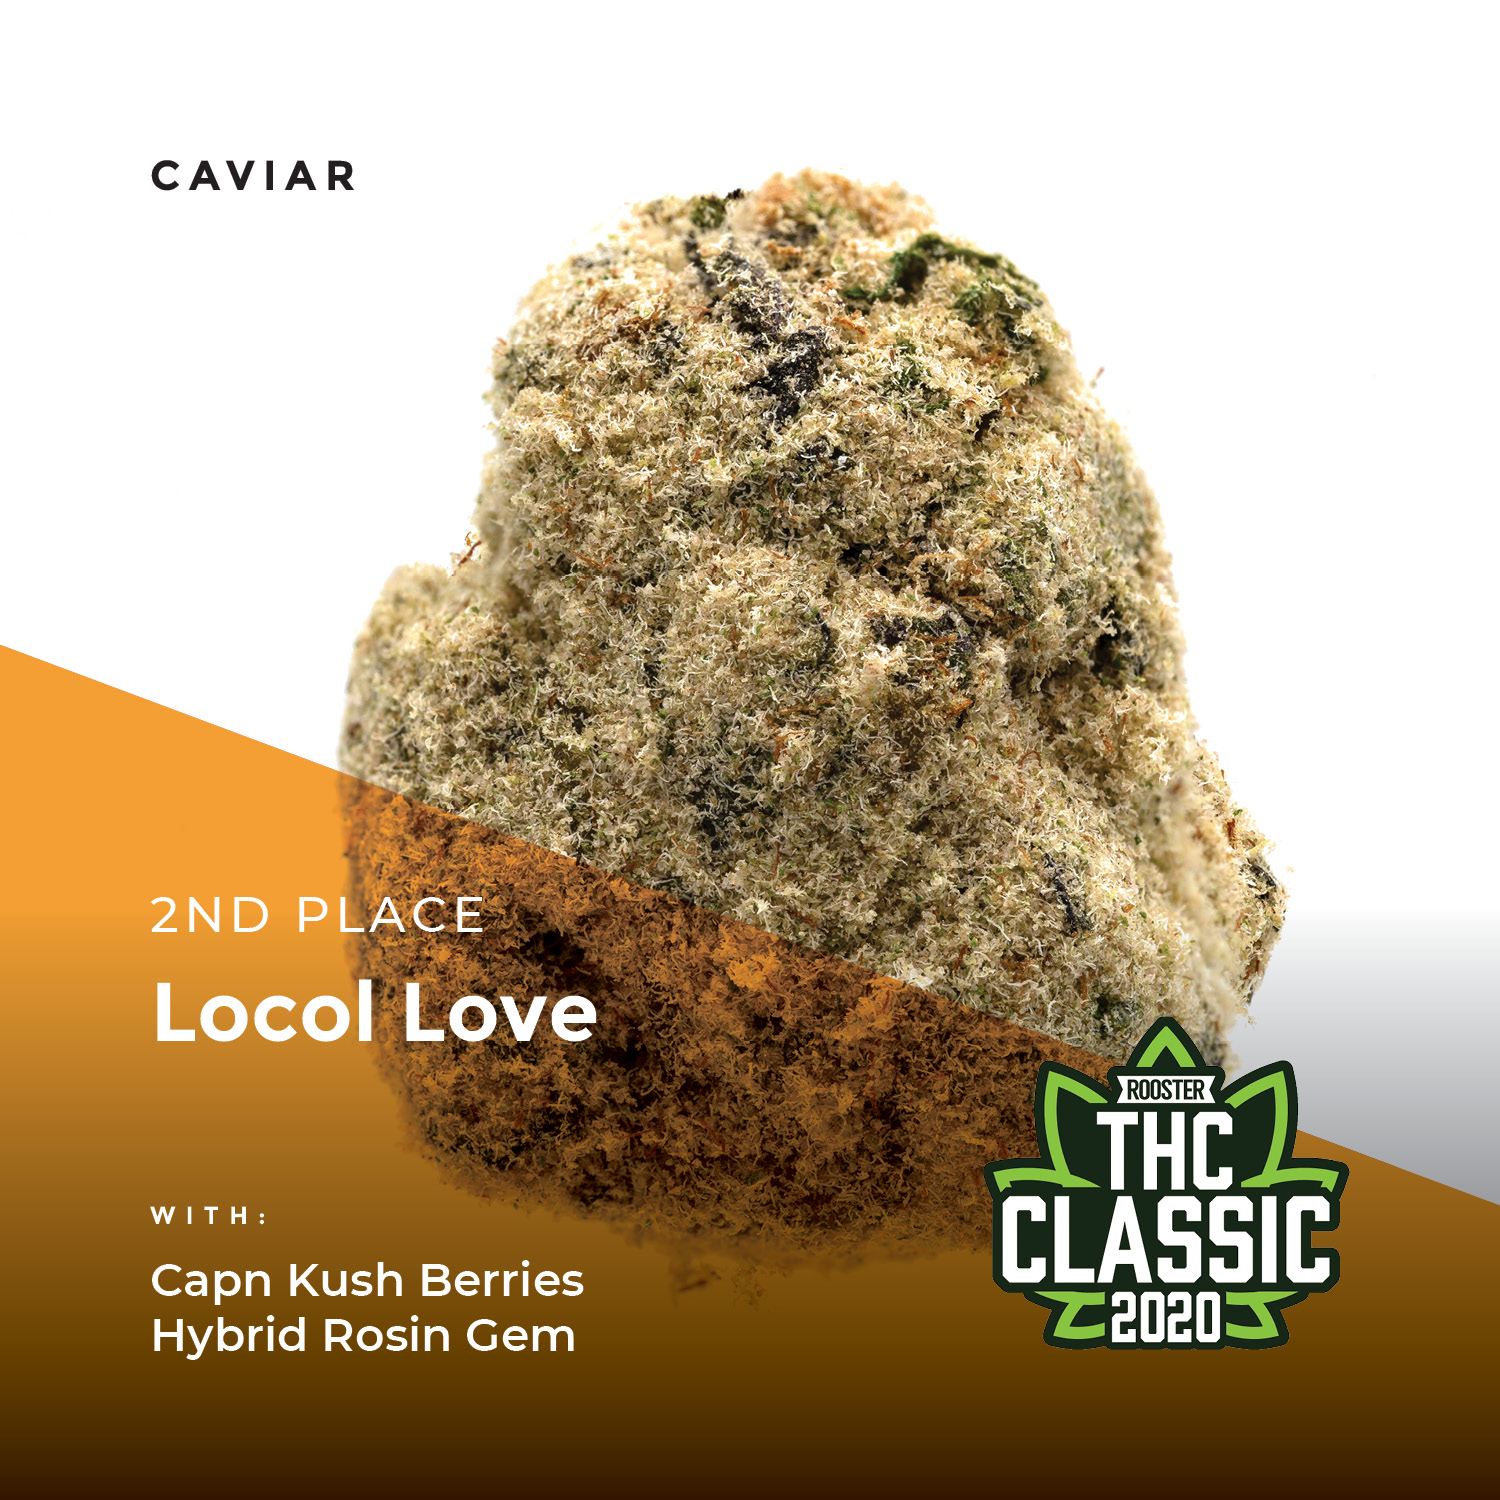 Best Colorado Cannabis Products: Caviar